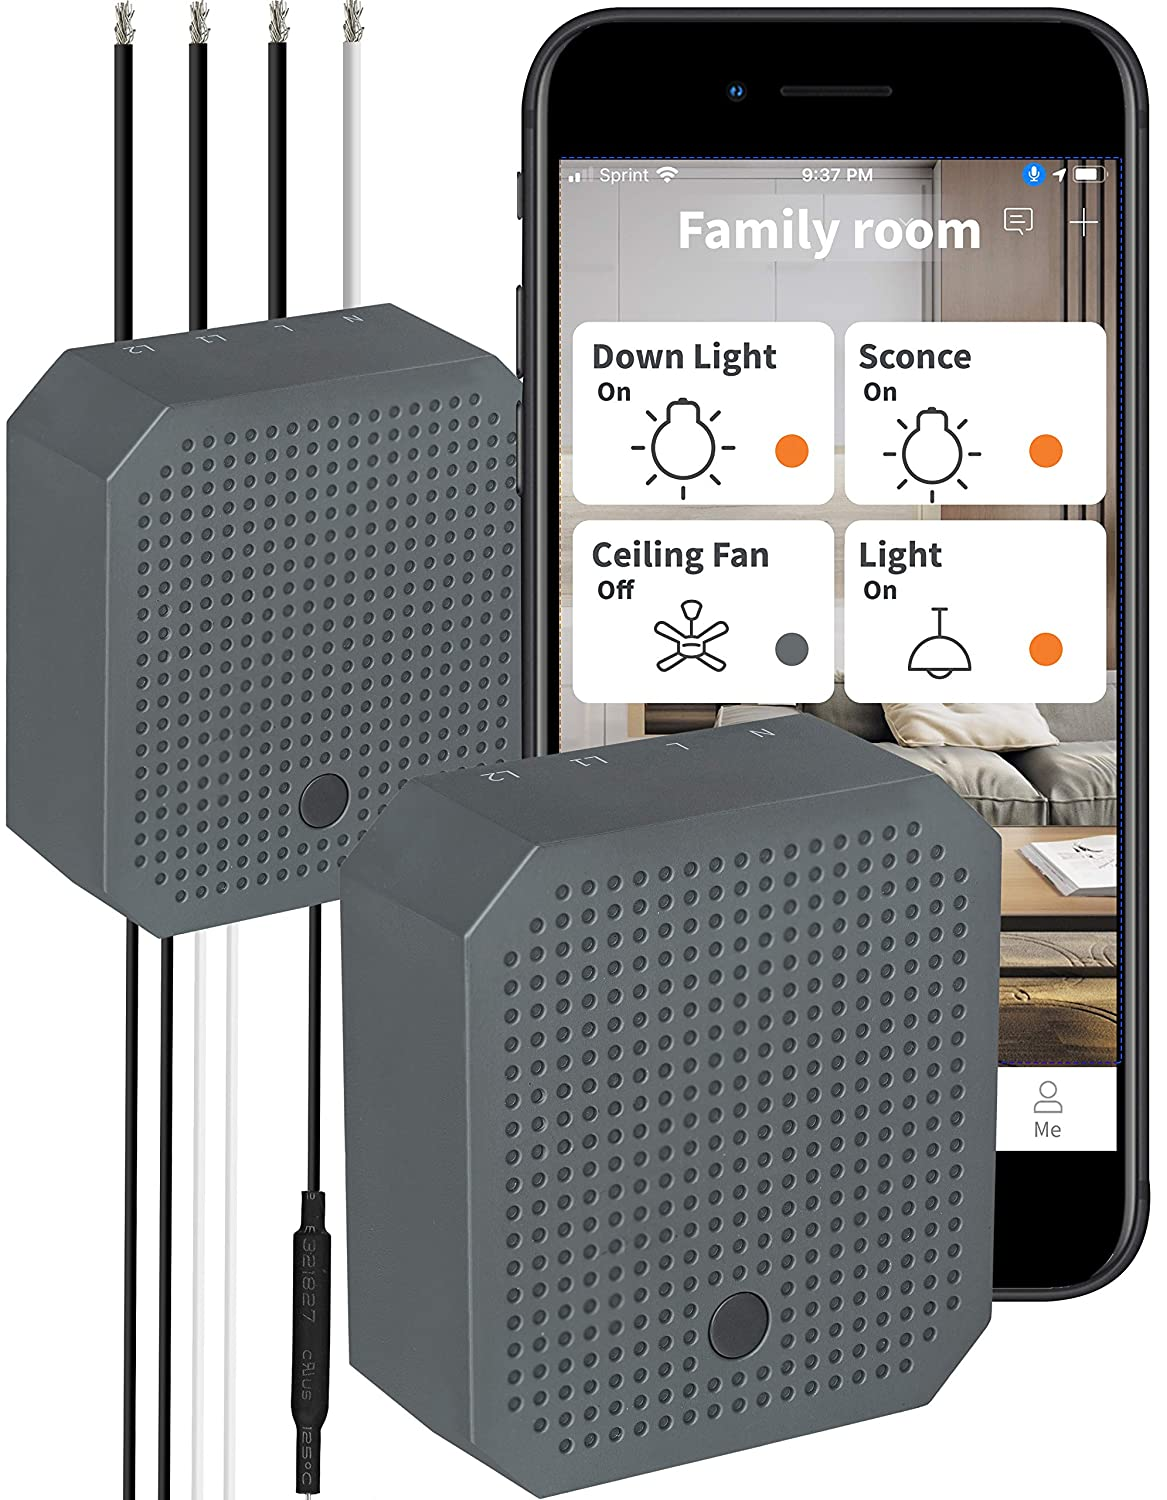 ORVIBO Smart WiFi Dual Relay Switch, Converts Single Pole 2 Switches/Double Light Switch Smart, Remote & Voice Control, Works with Alexa, Google Home, Siri, Needs Neutral Wire, 2.4Ghz Wi-Fi, 2 Pack